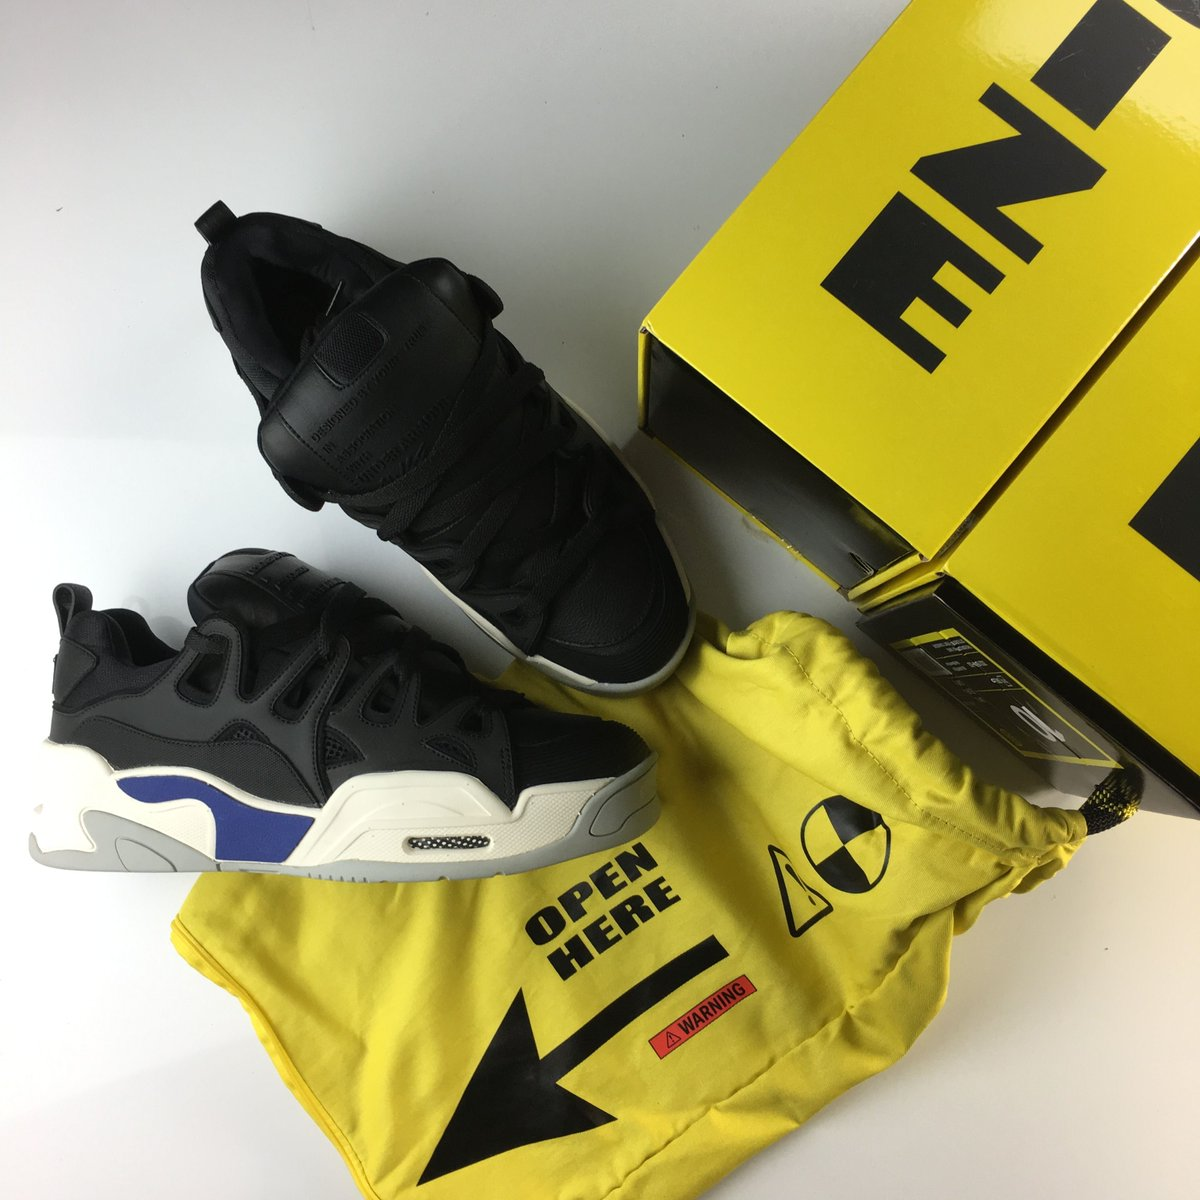 4eb5aa52e53 Did ASAP Rocky and UA copy the Osiris D3? They say no. Osiris says yes.  Check out the unboxing for one of the year's most controversial shoes ...